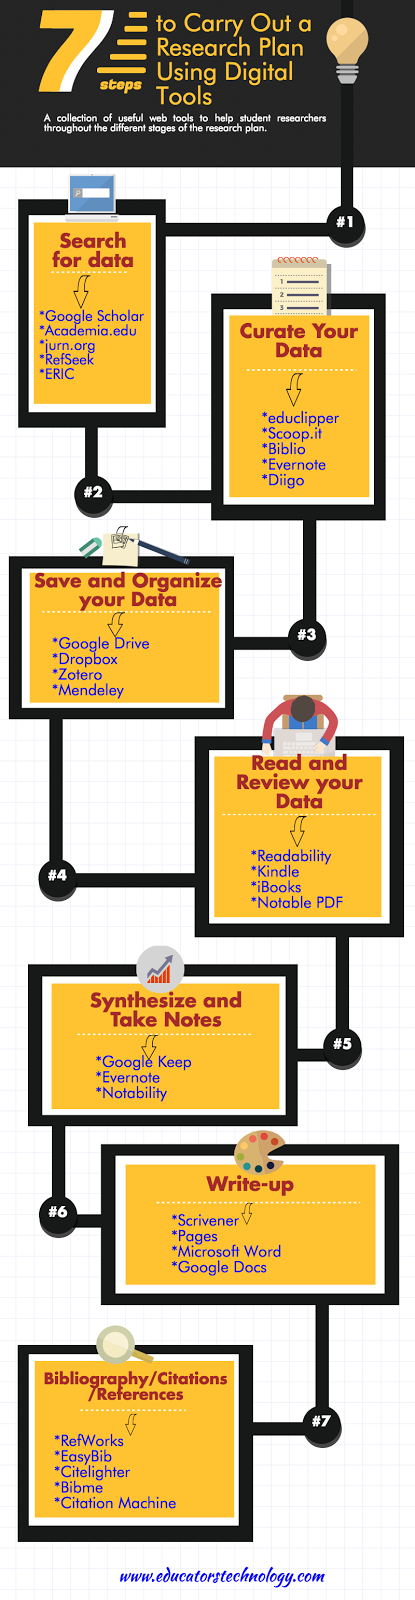 7 Step to Do Academic Research Using Digital Technologies ~ Educational Technology and Mobile Learning